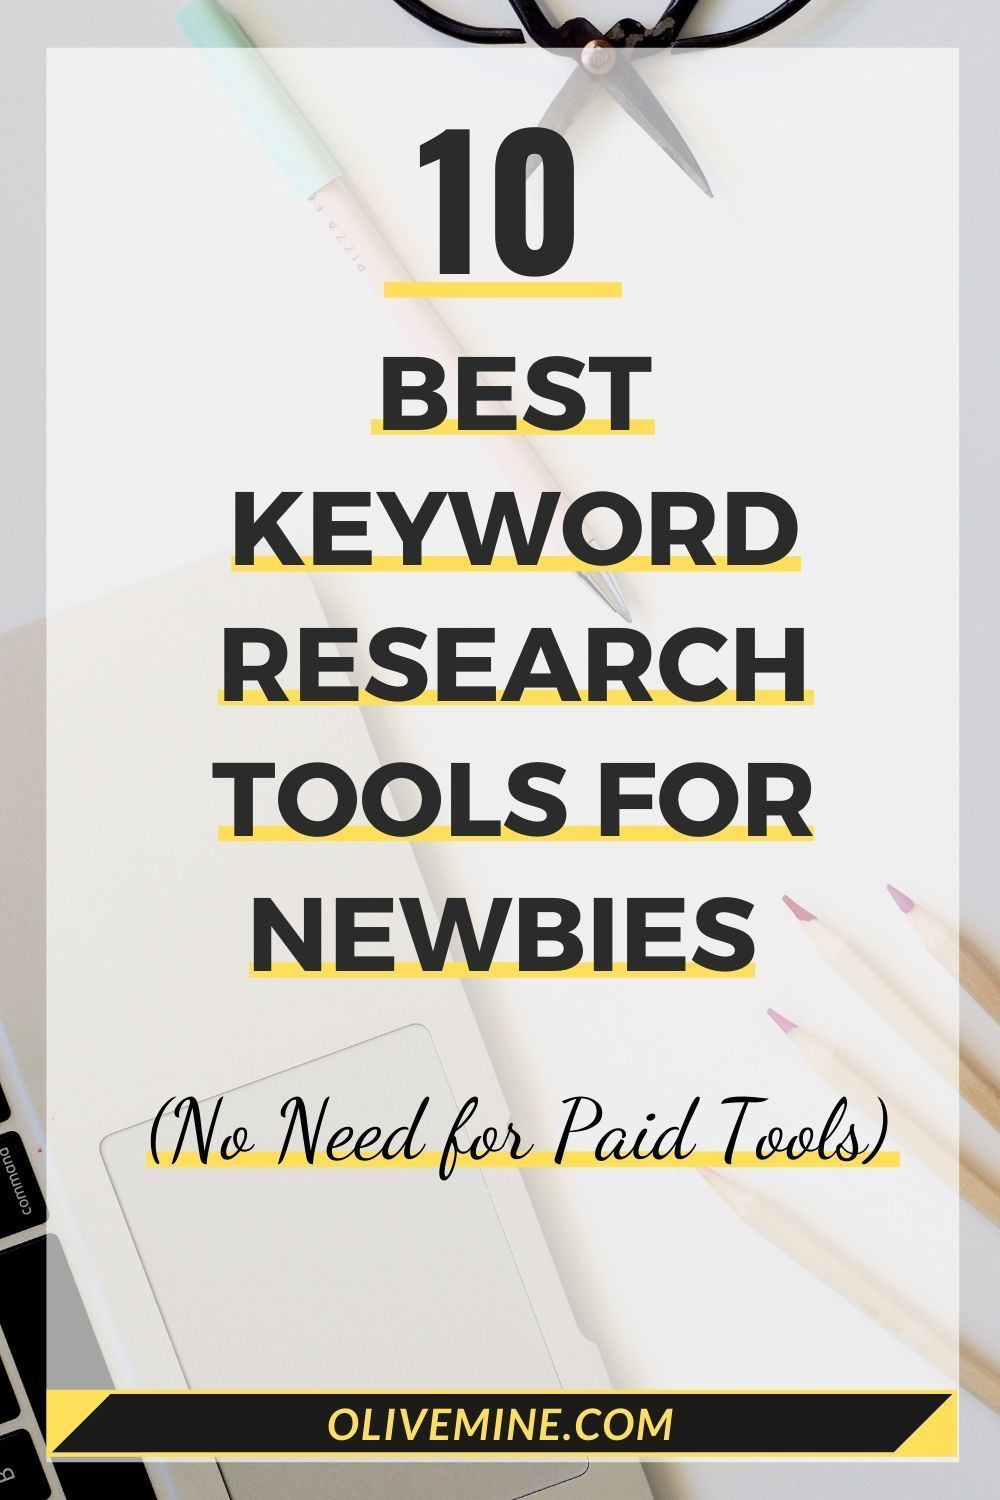 10 BEST KEYWORD RESEARCH TOOLS FOR NEWBIES in 2020 Free